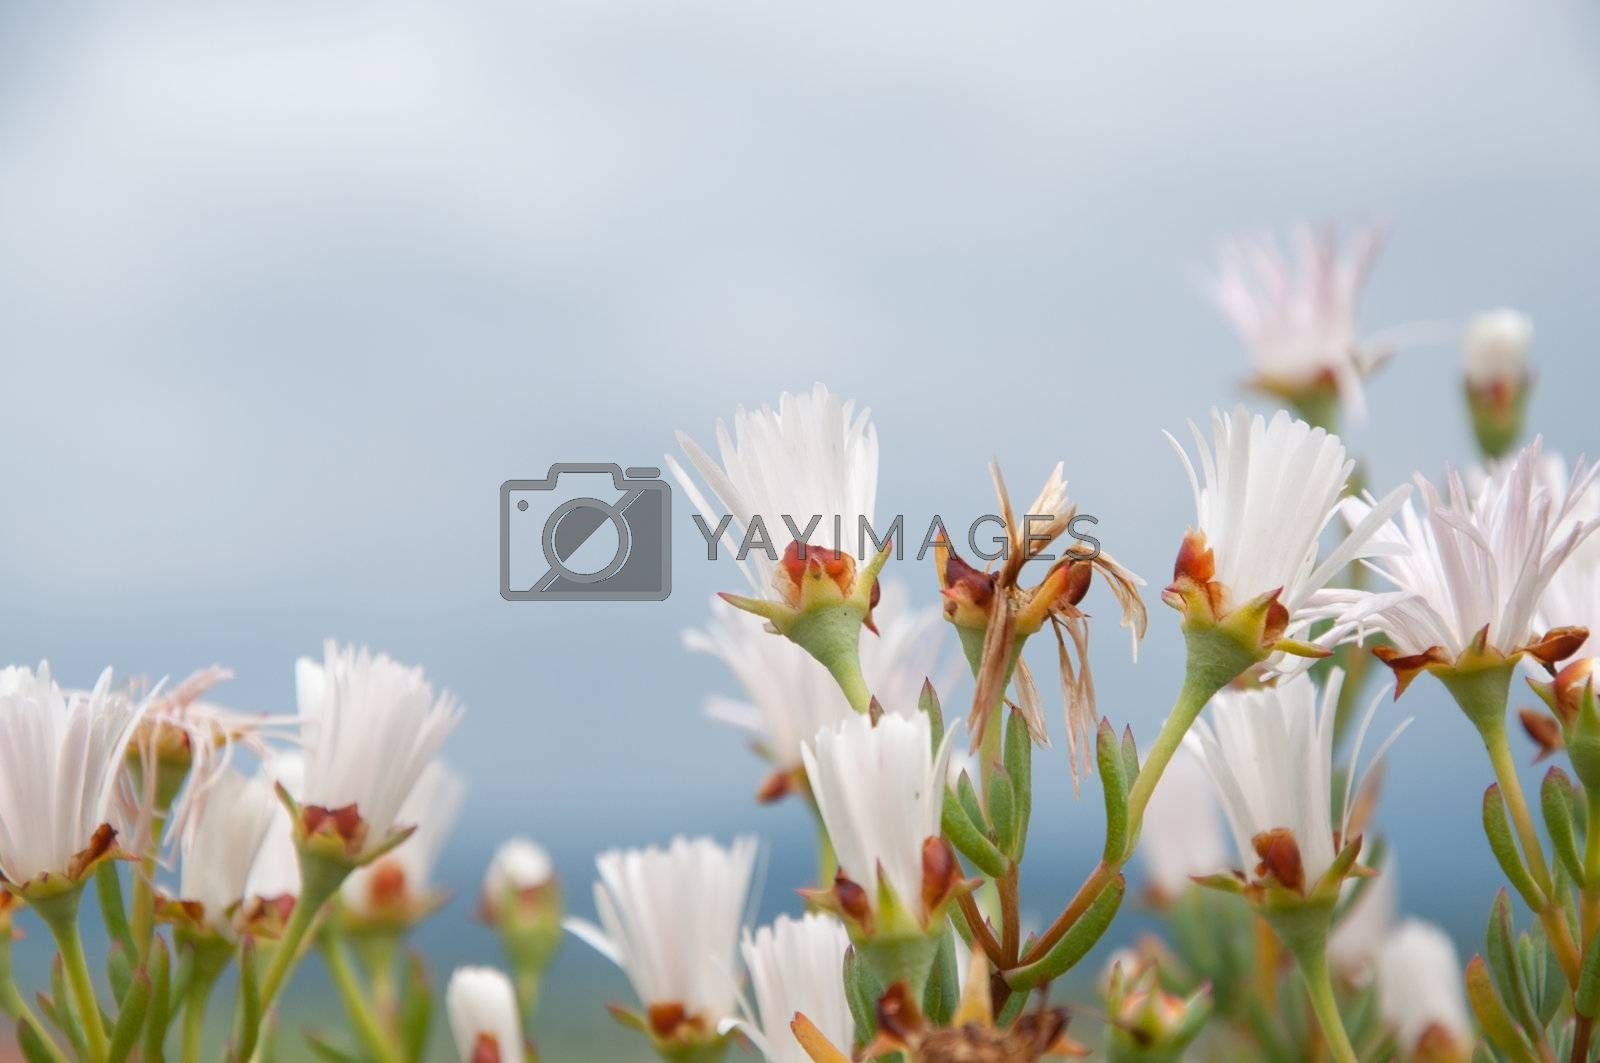 A group of flower trying to reach the sun